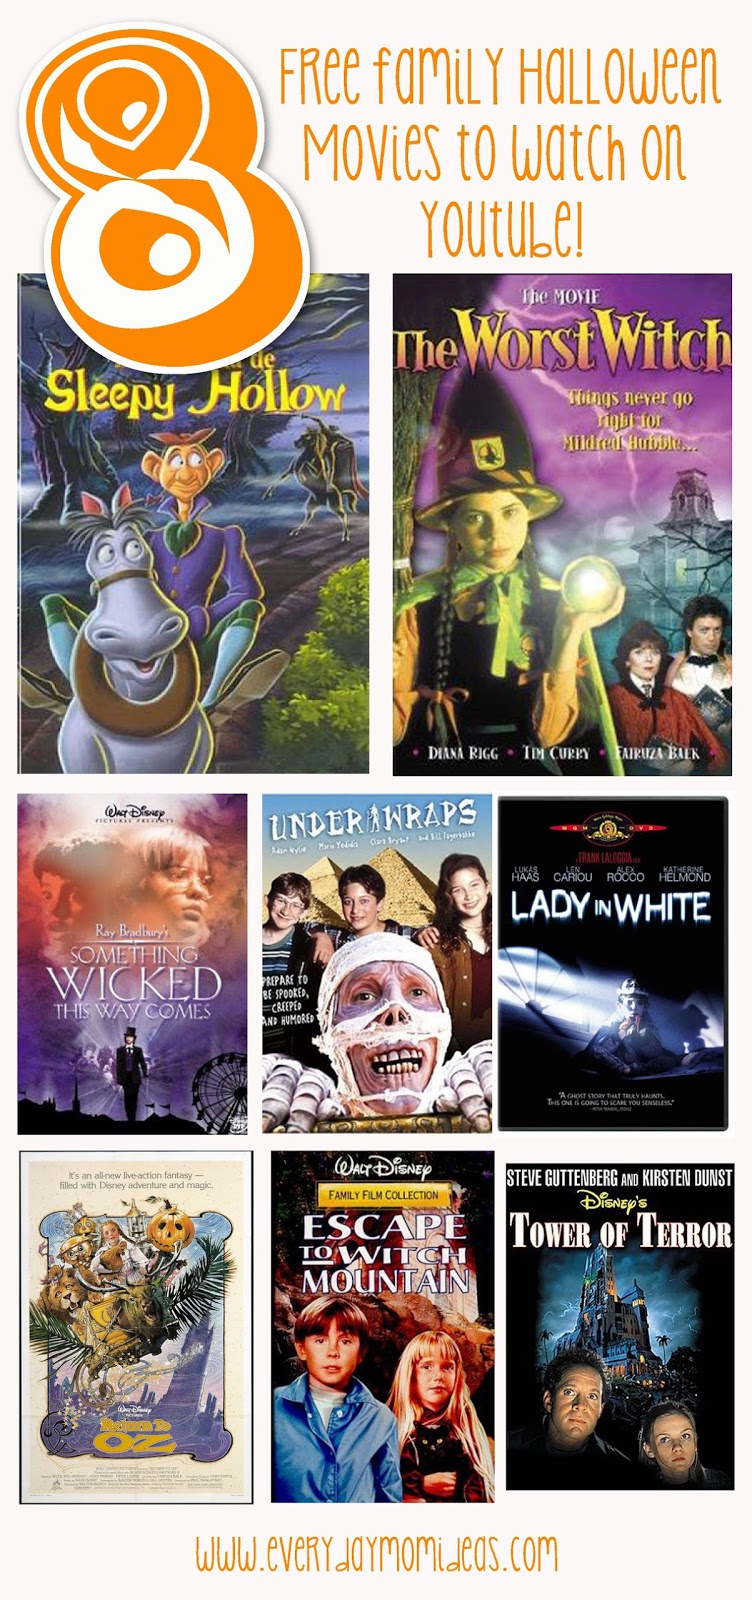 8 Free Family Halloween Movies You Can Watch On Youtube ...